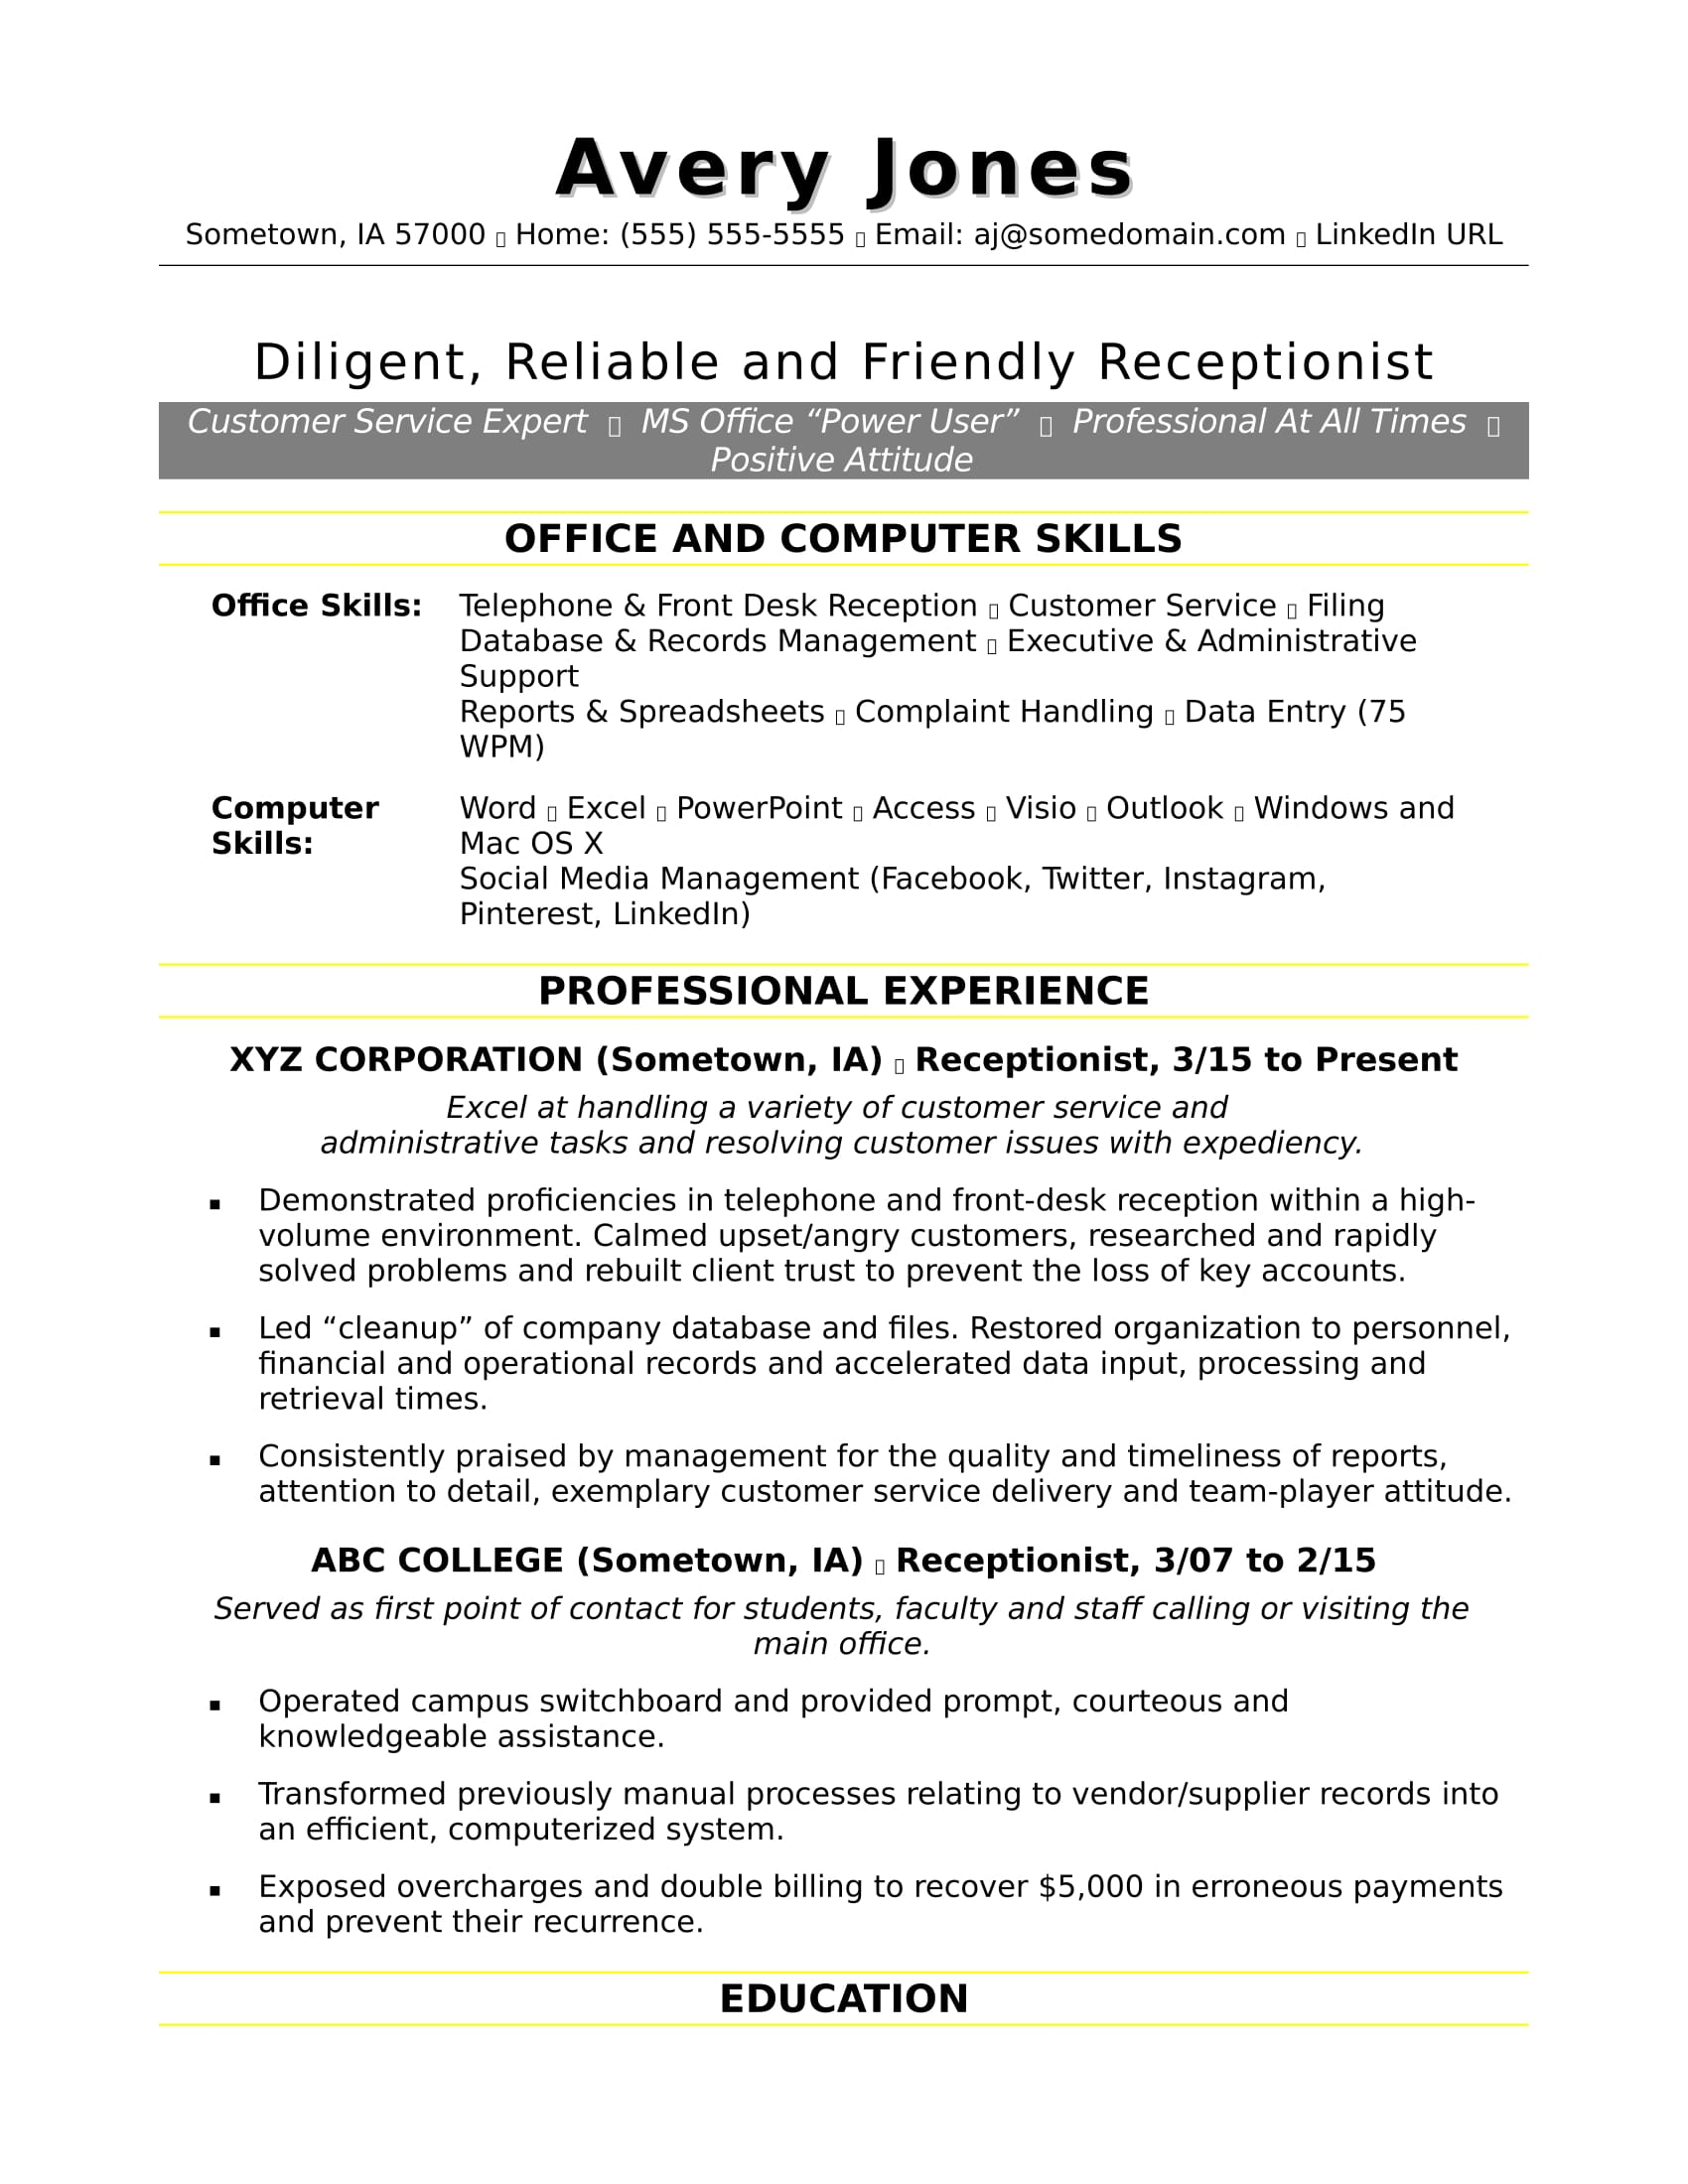 Receptionist resume sample monster sample resume for a receptionist madrichimfo Choice Image